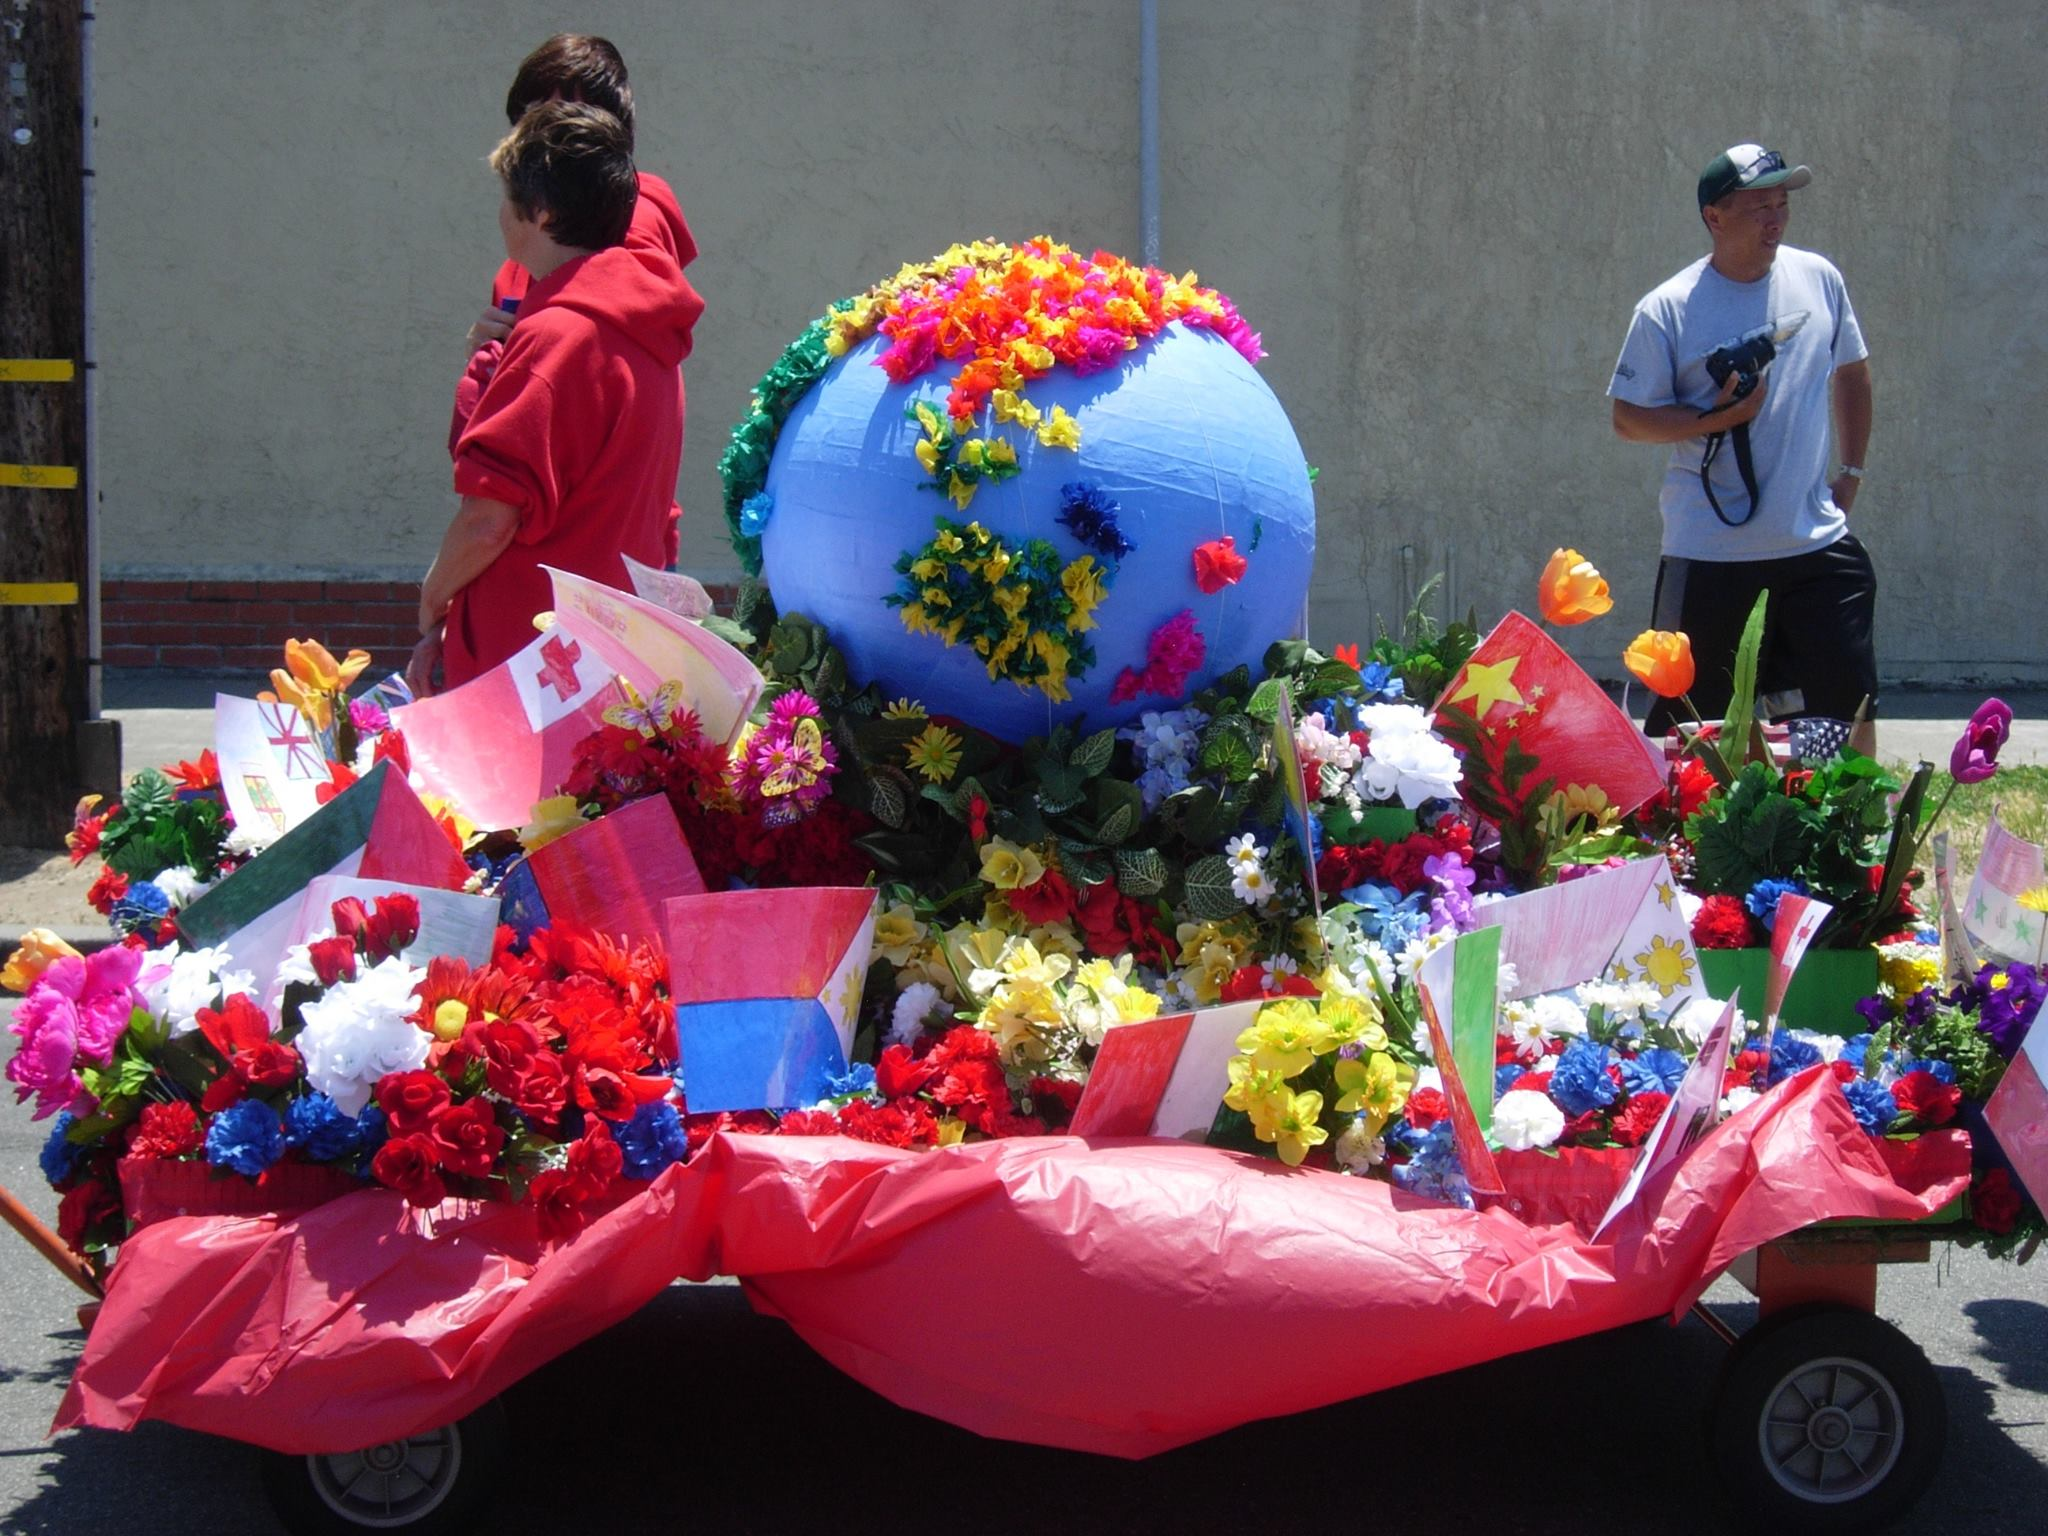 San Bruno Posey Parade and Community Day in the Park Set for June 4th